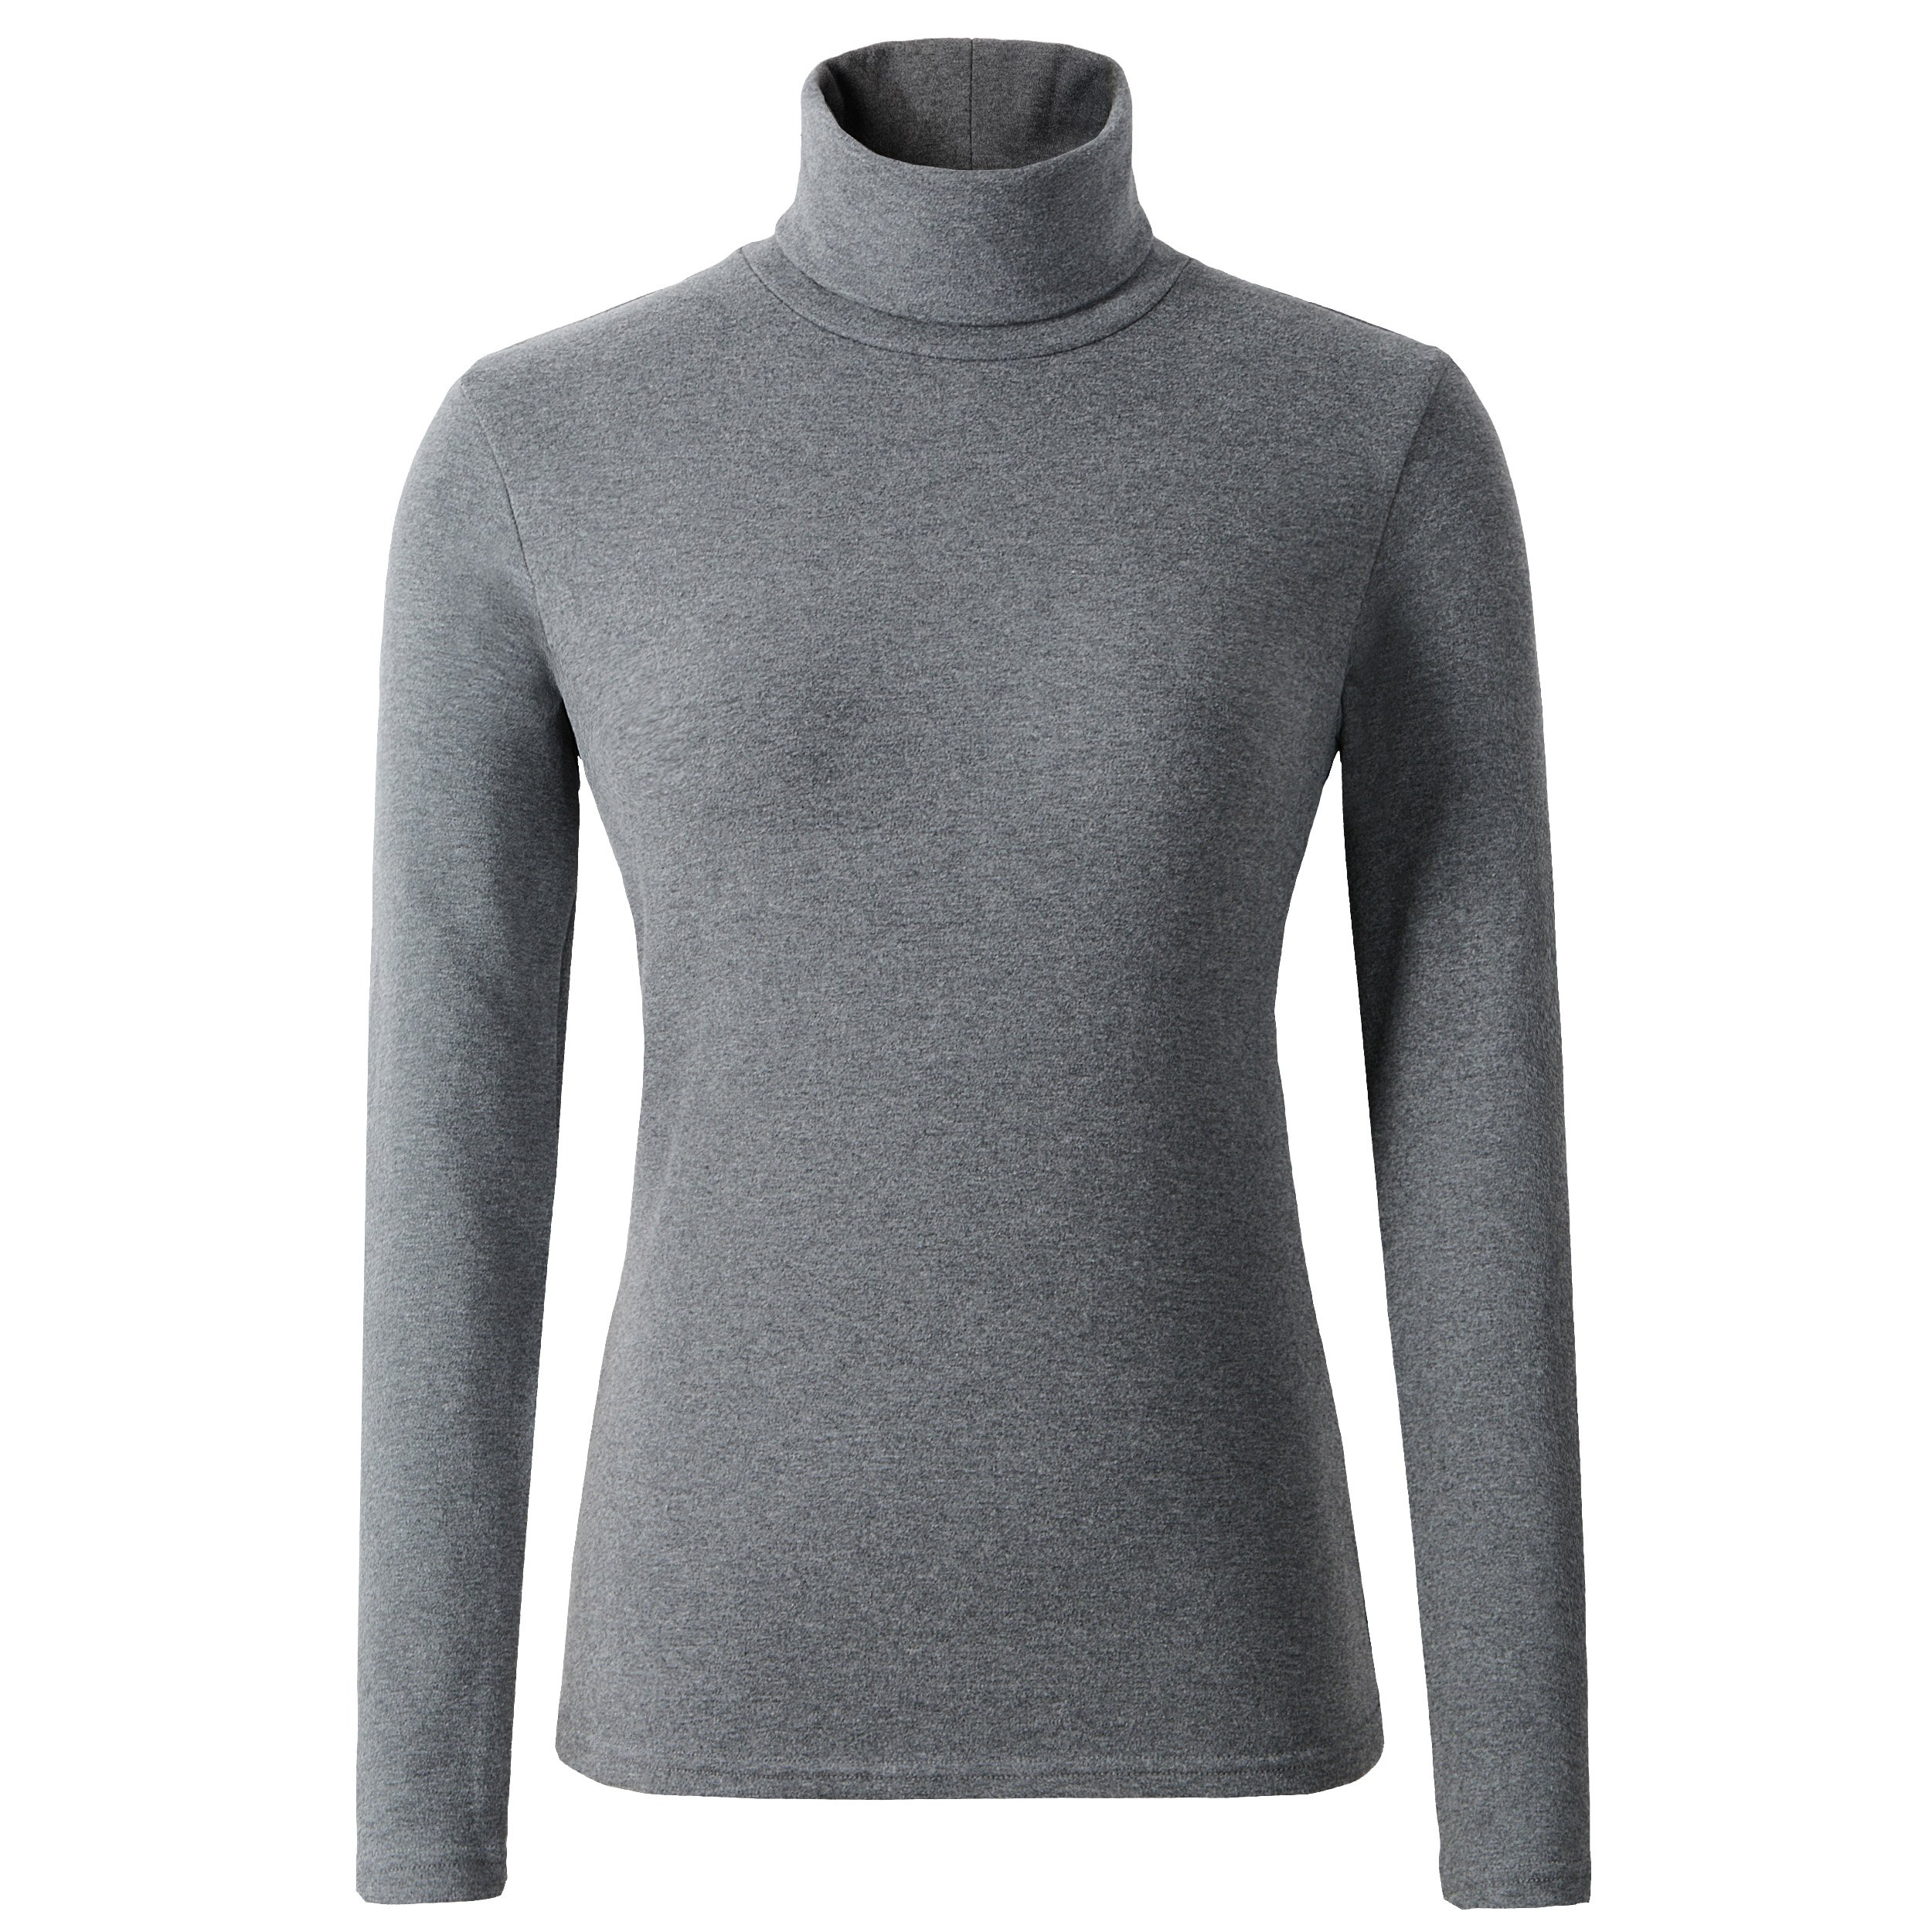 HieasyFit Women's Soft Cotton Turtleneck Top Basic Layer Darkgray XXL by HieasyFit